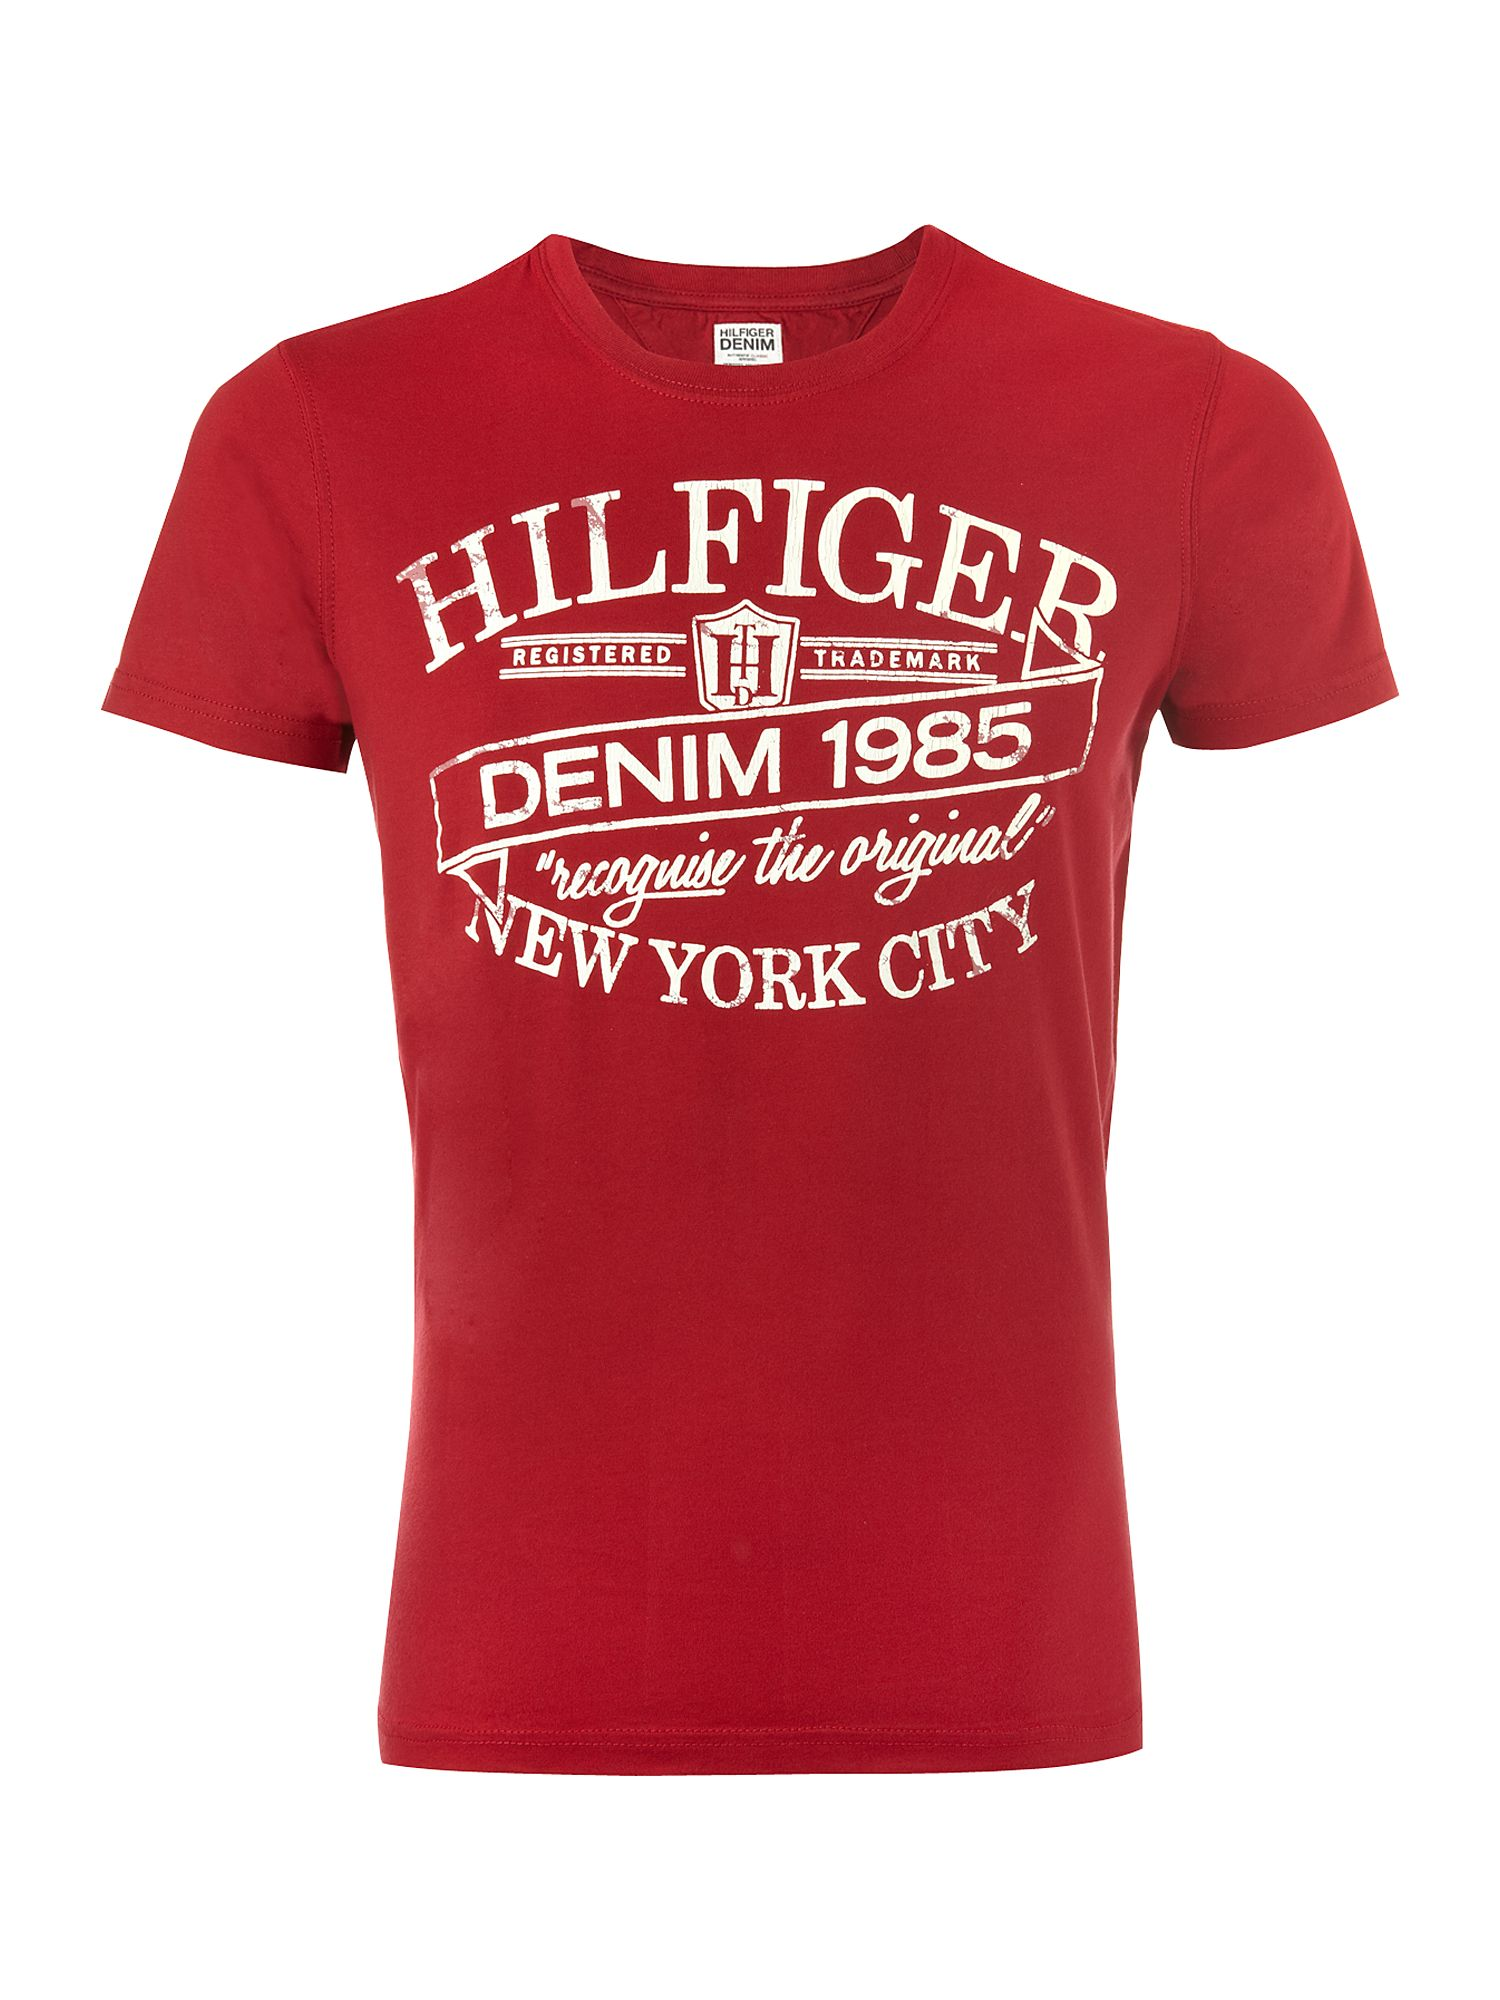 Tommy Hilfiger Federer Cotton T-shirt Red product image